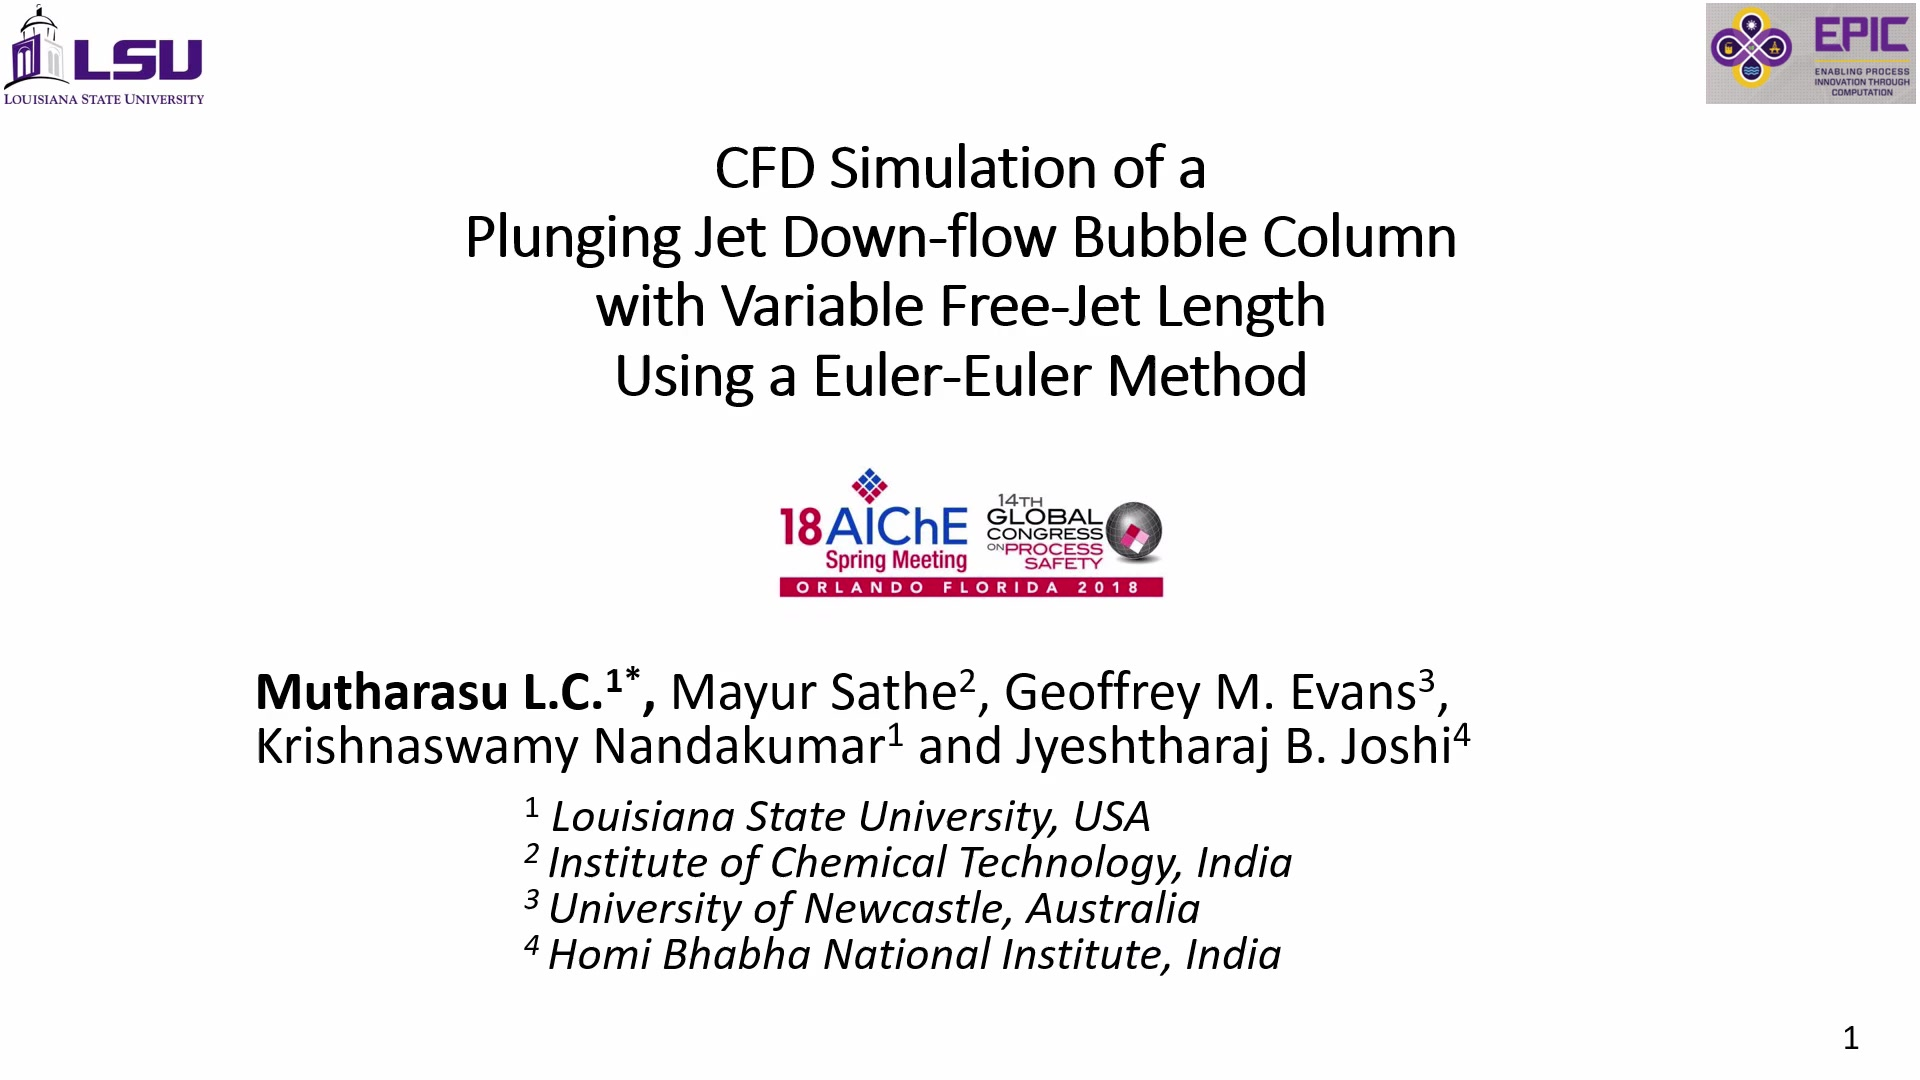 CFD Simulation of a Plunging Jet Down-Flow Bubble Column